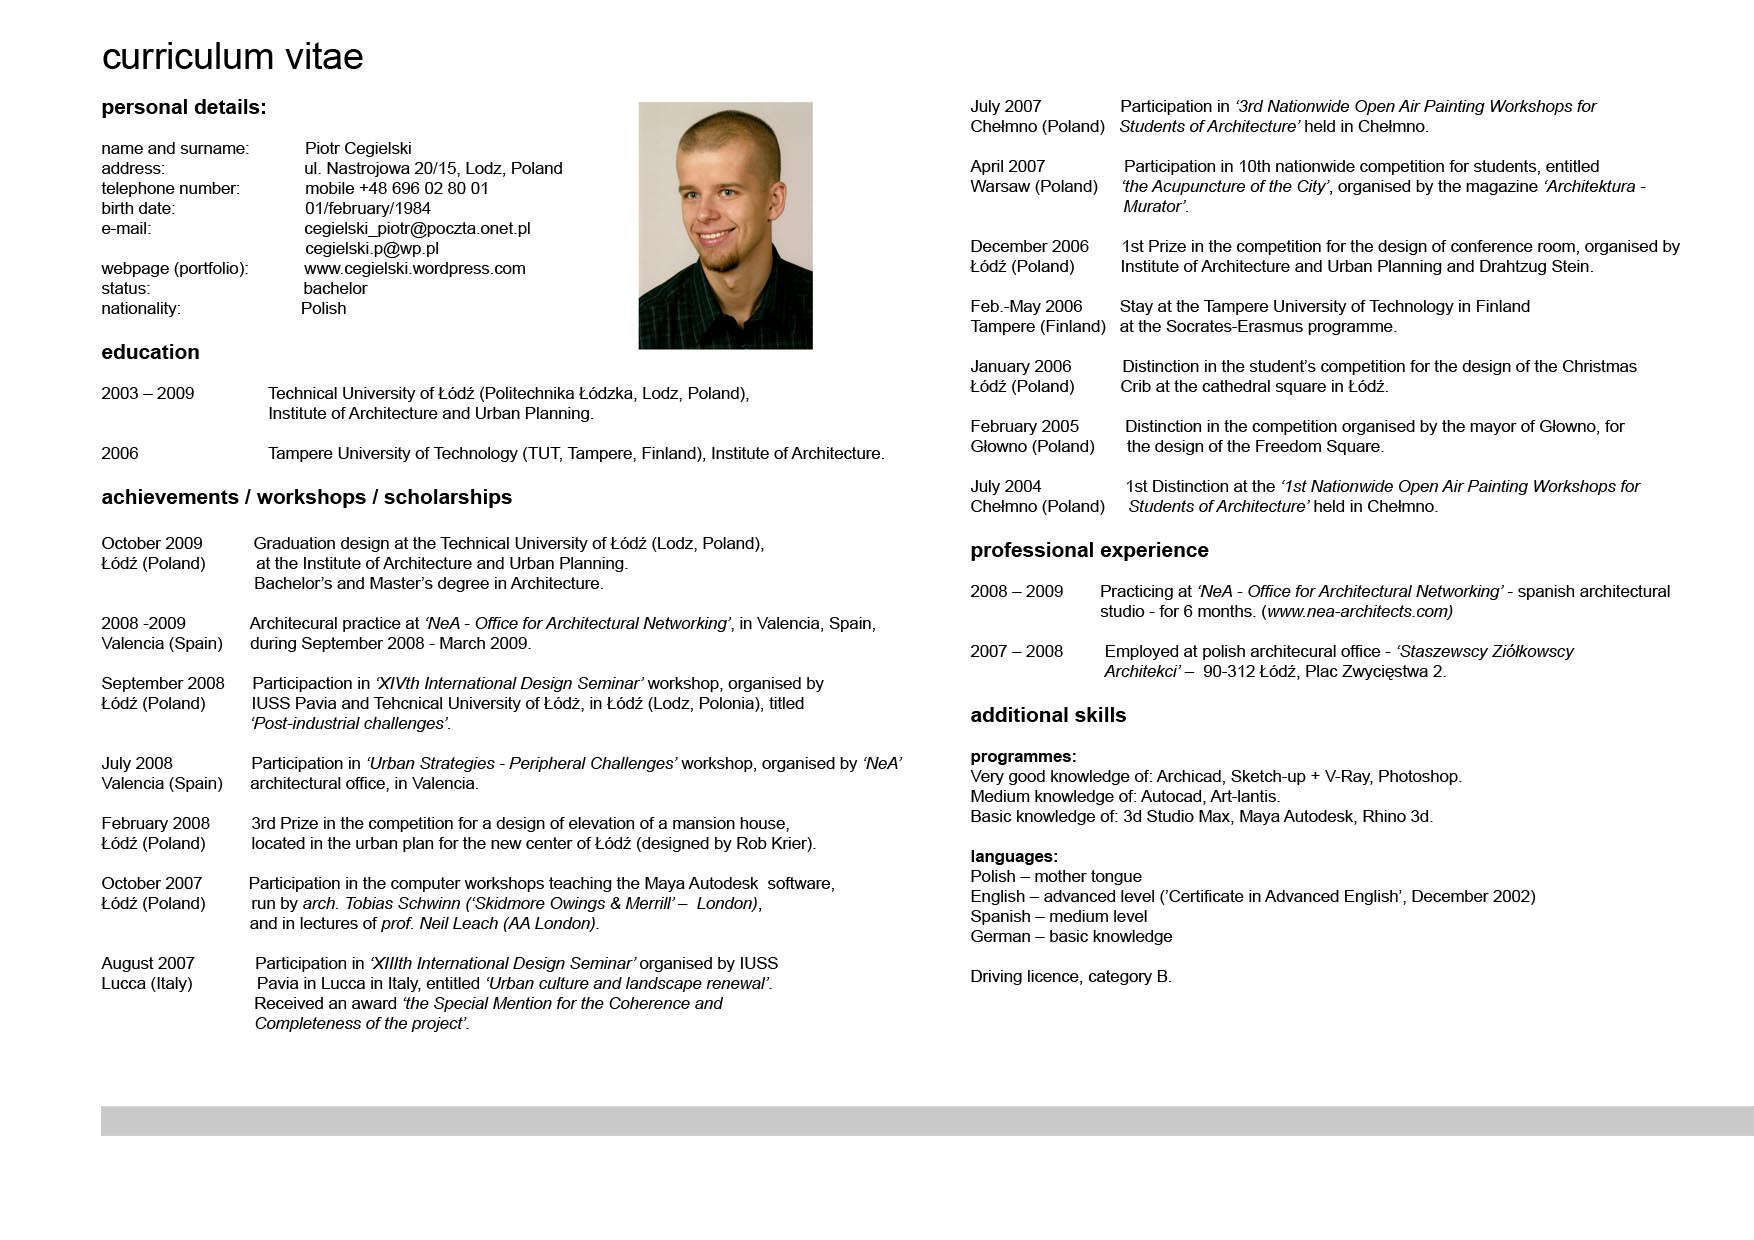 curriculum vitae in english examples